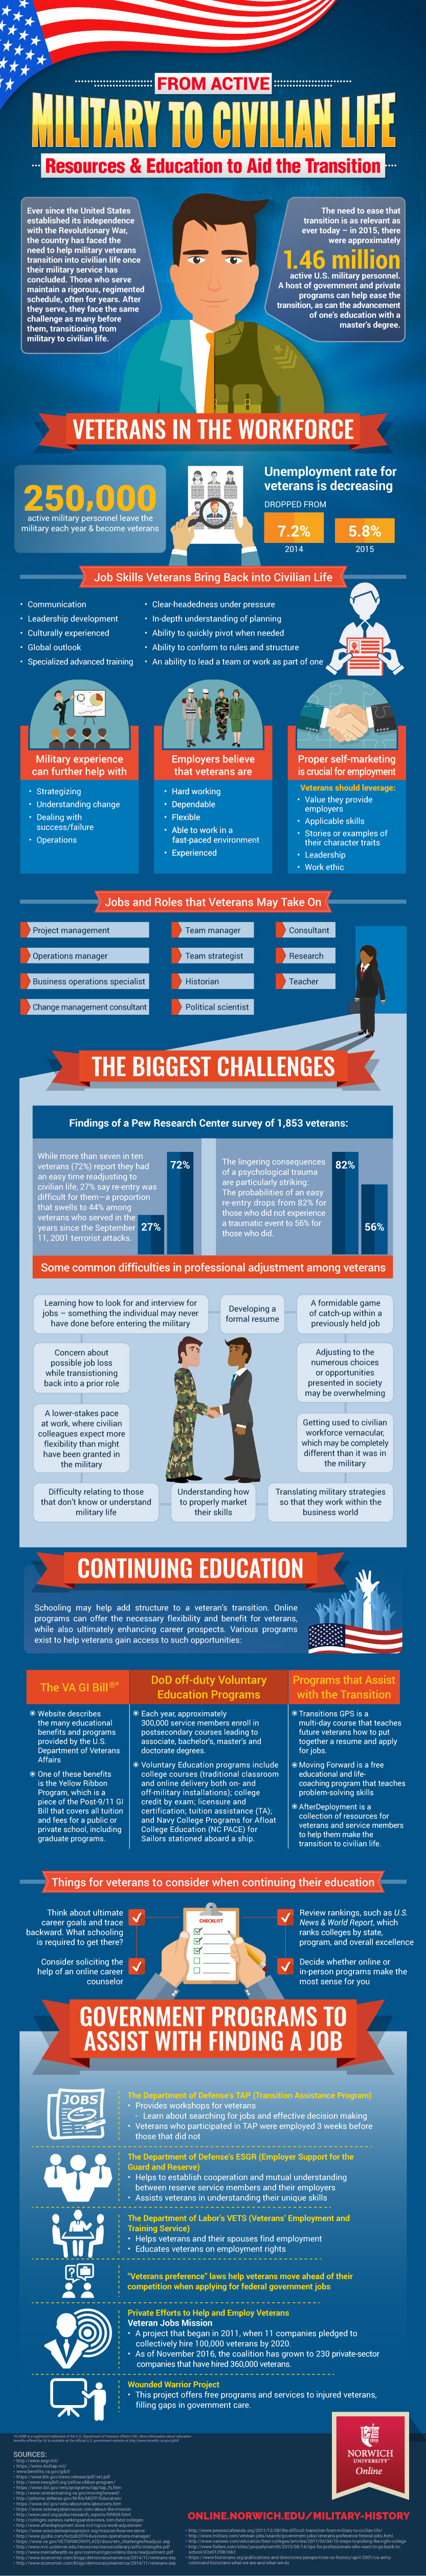 infographic on military to civilian life transition